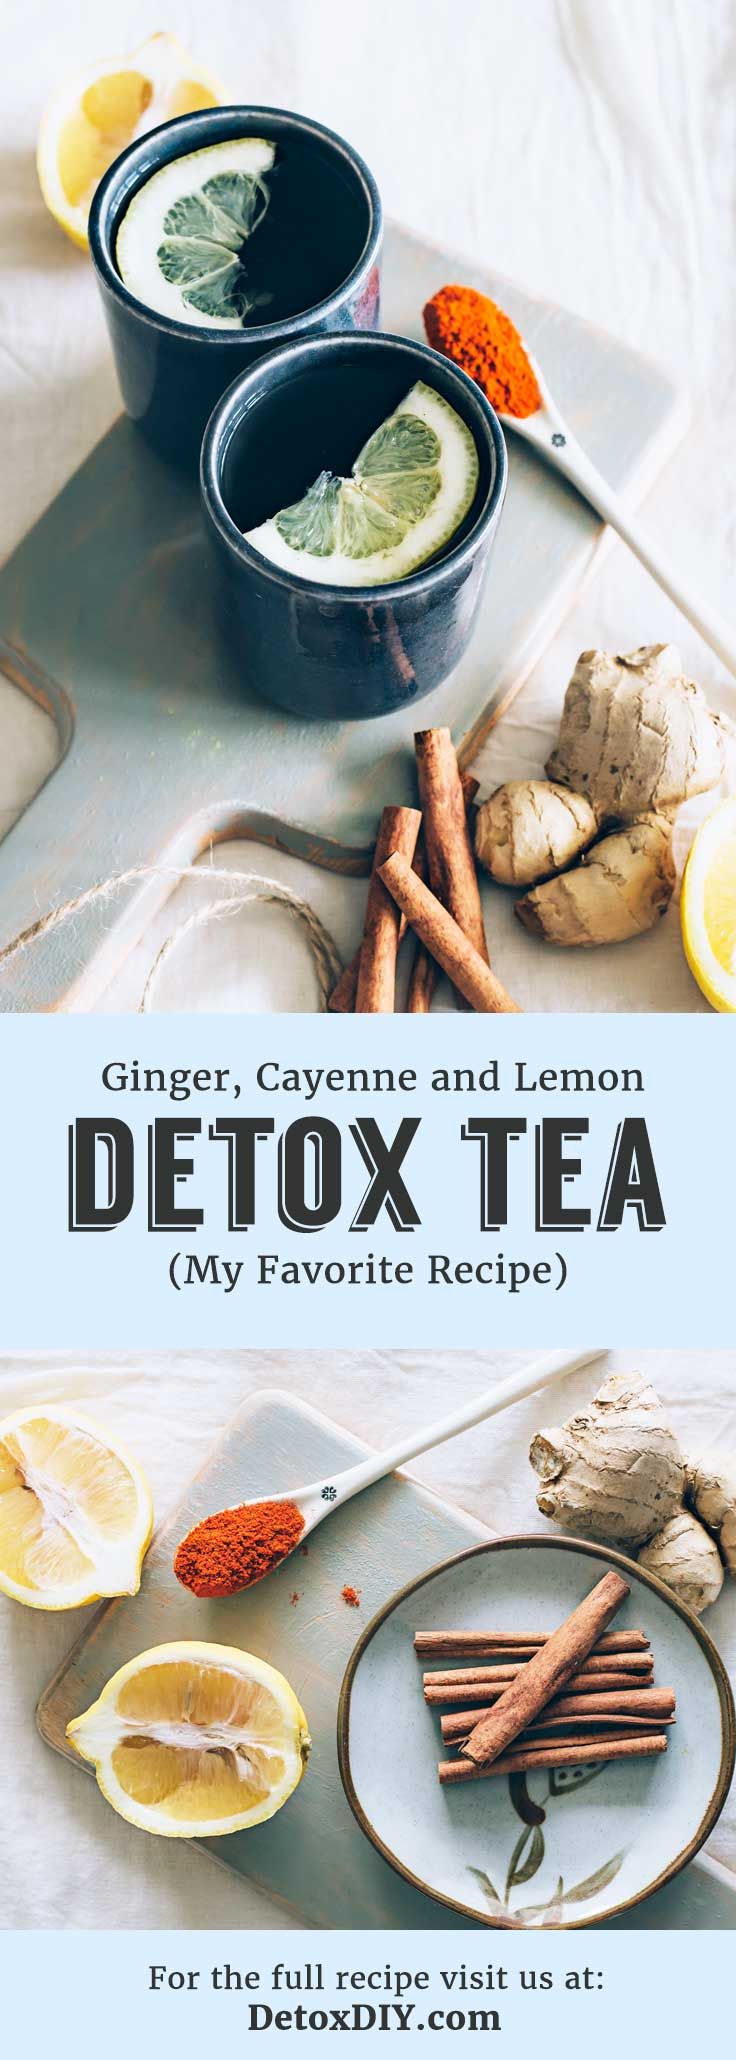 My favorite lemon detox tea recipe using just 4 simple ingredients. Definitely a must-try!